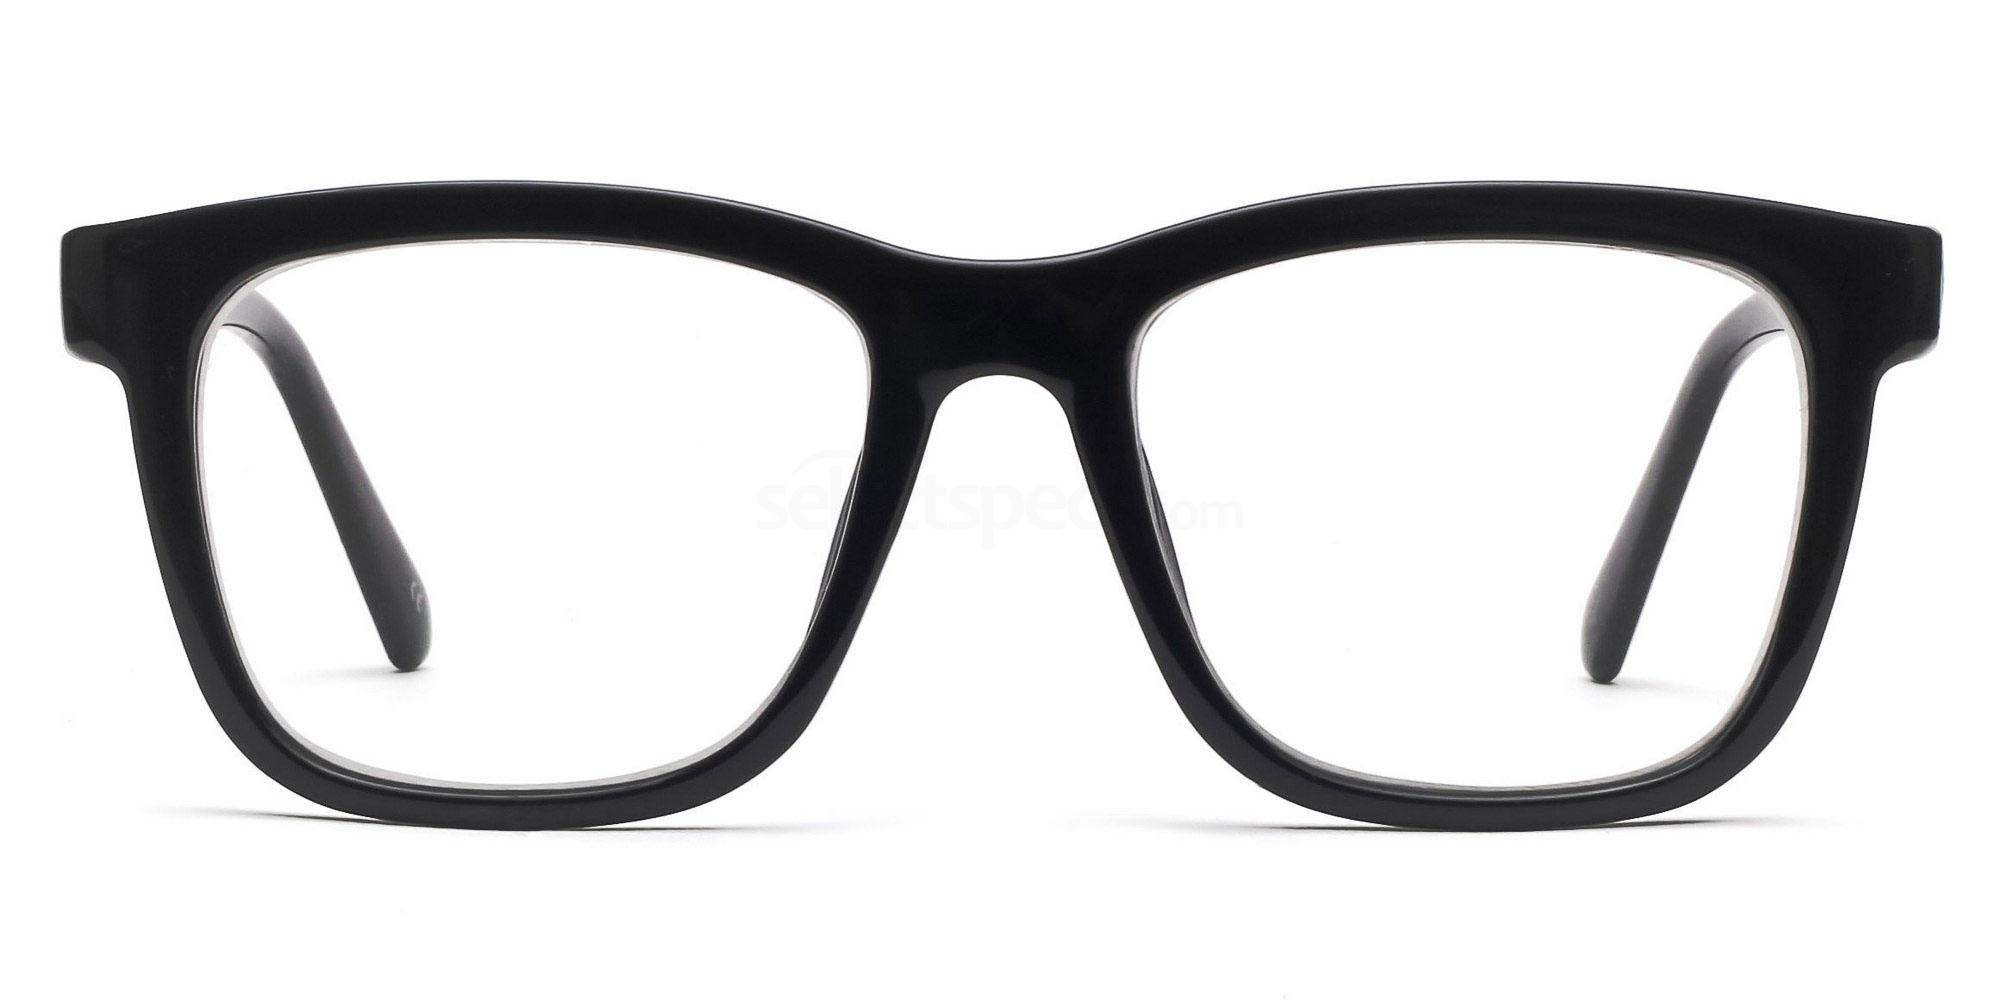 Black-Thick-Rimmed-Framed-Deep-Set-Prescription-Glasses